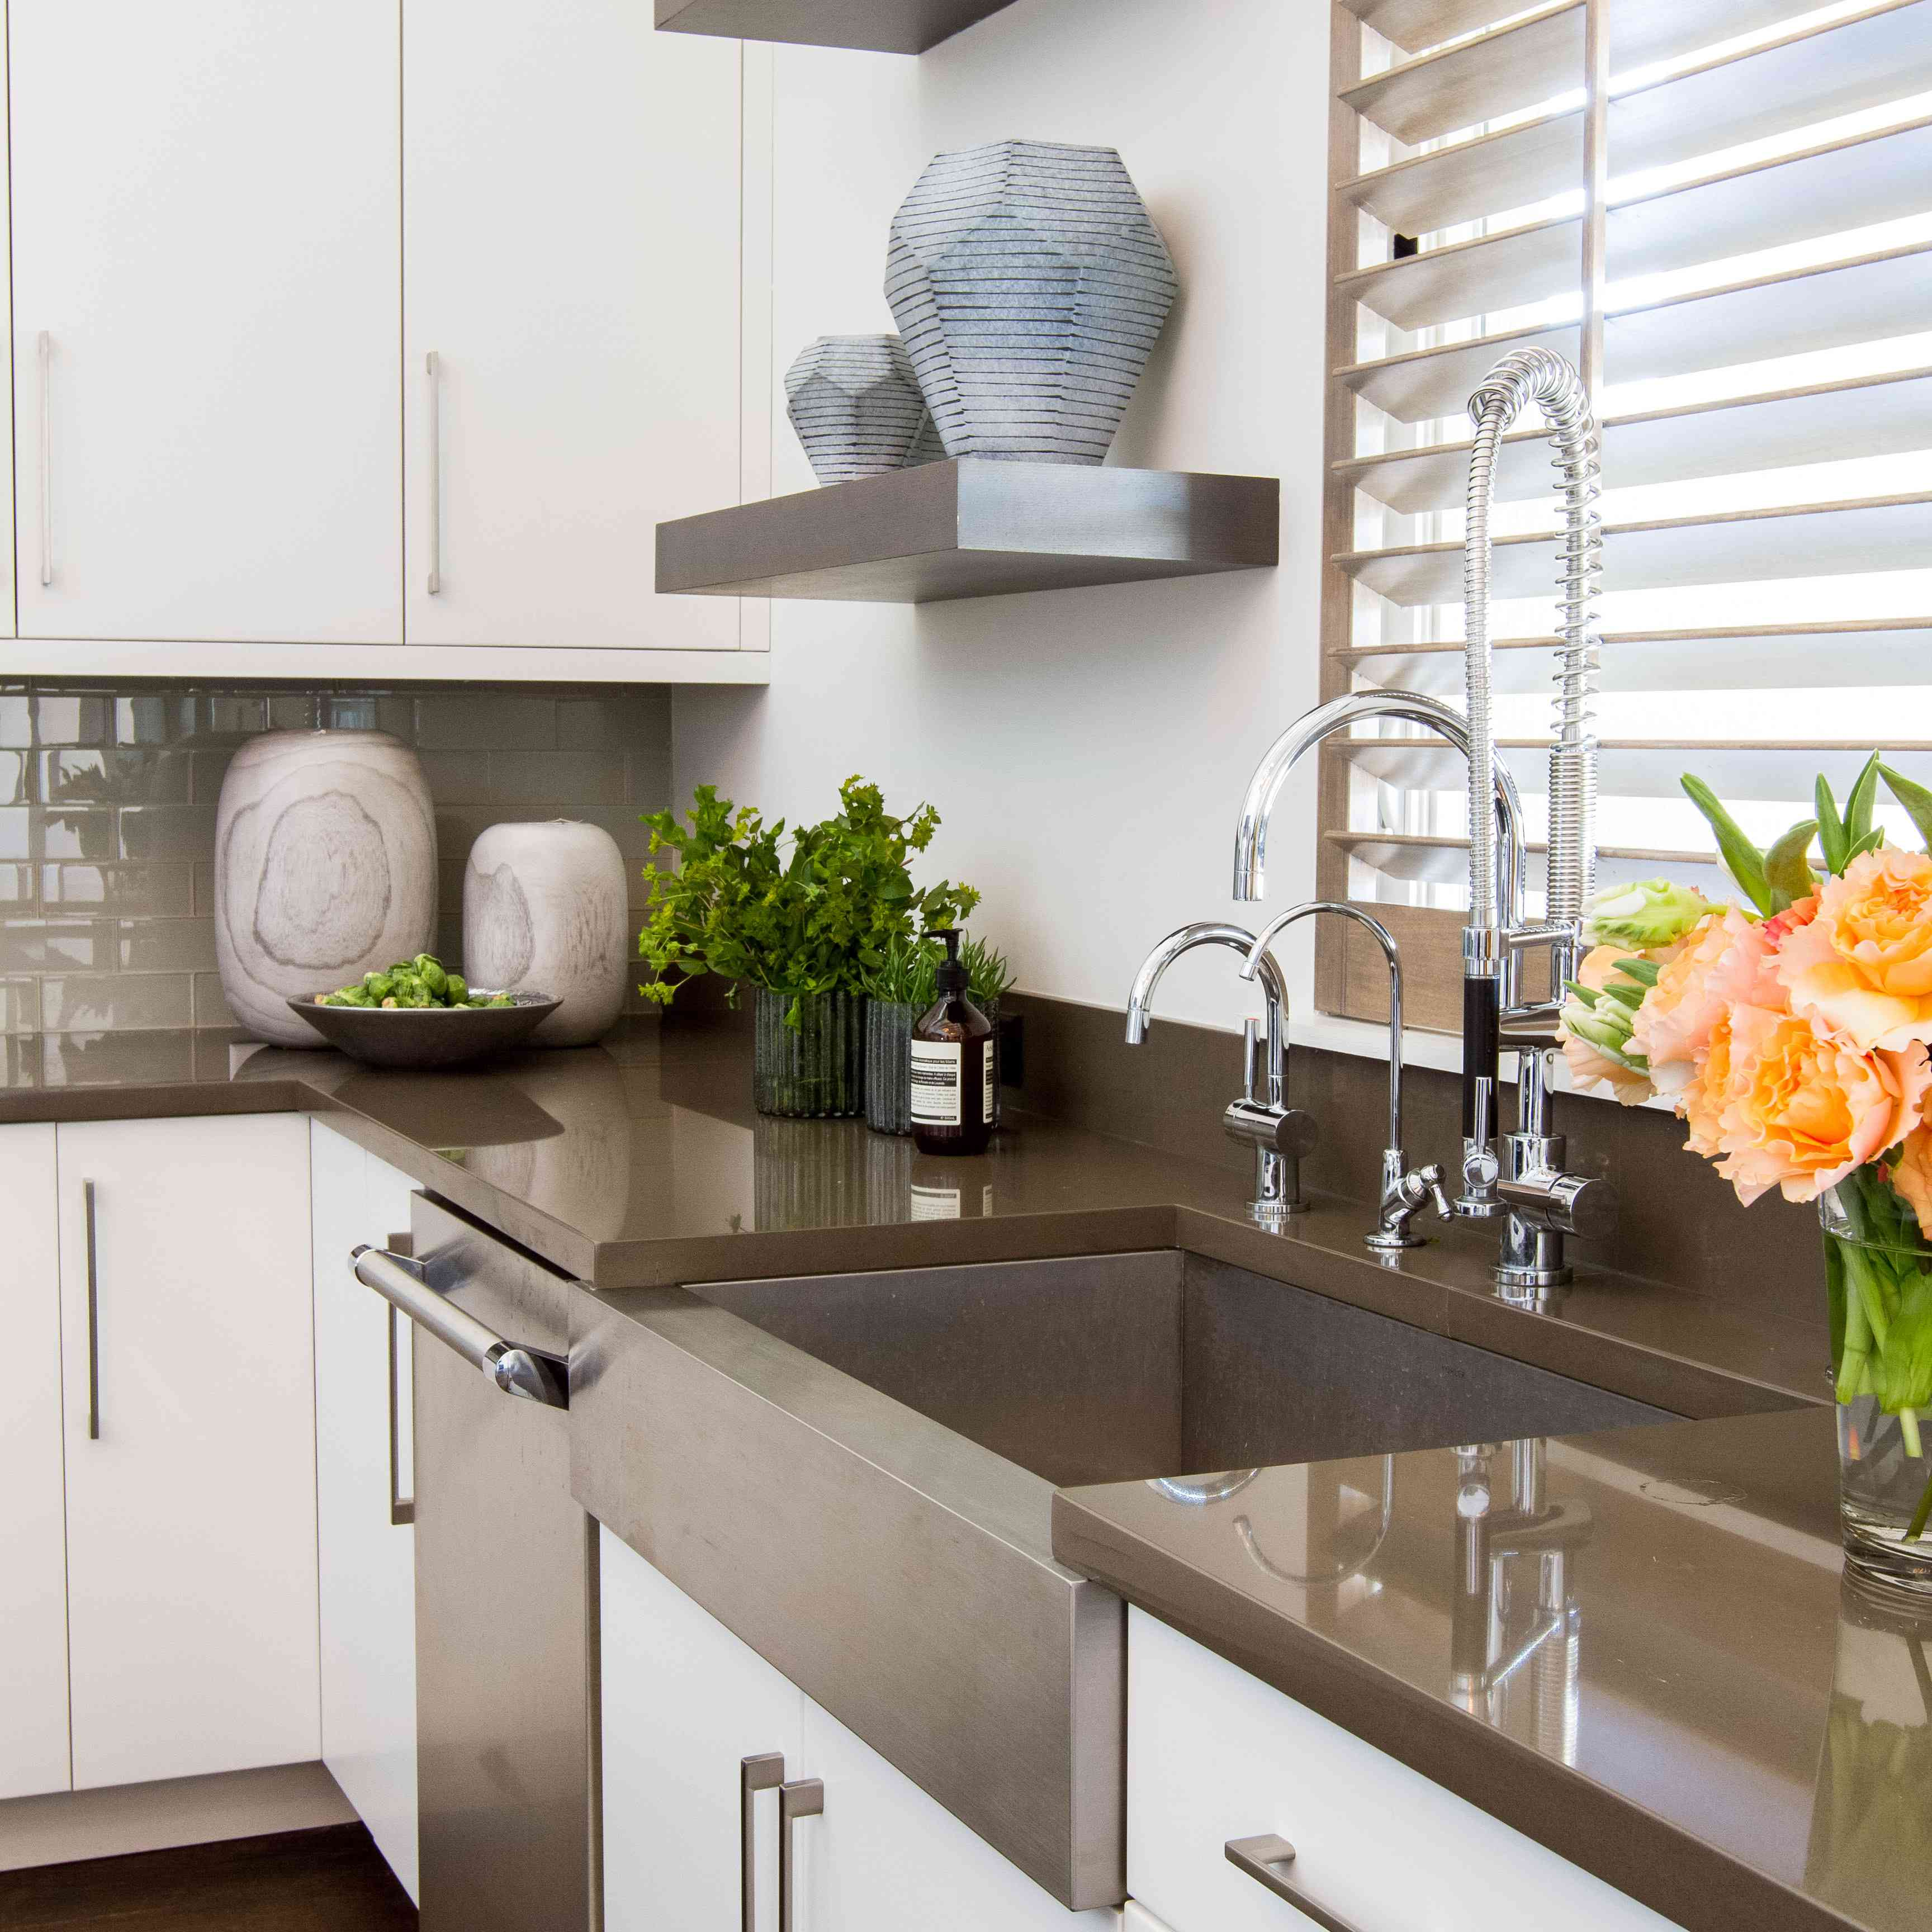 Kitchen Counter Decor Ideas You'll Want to Try Out